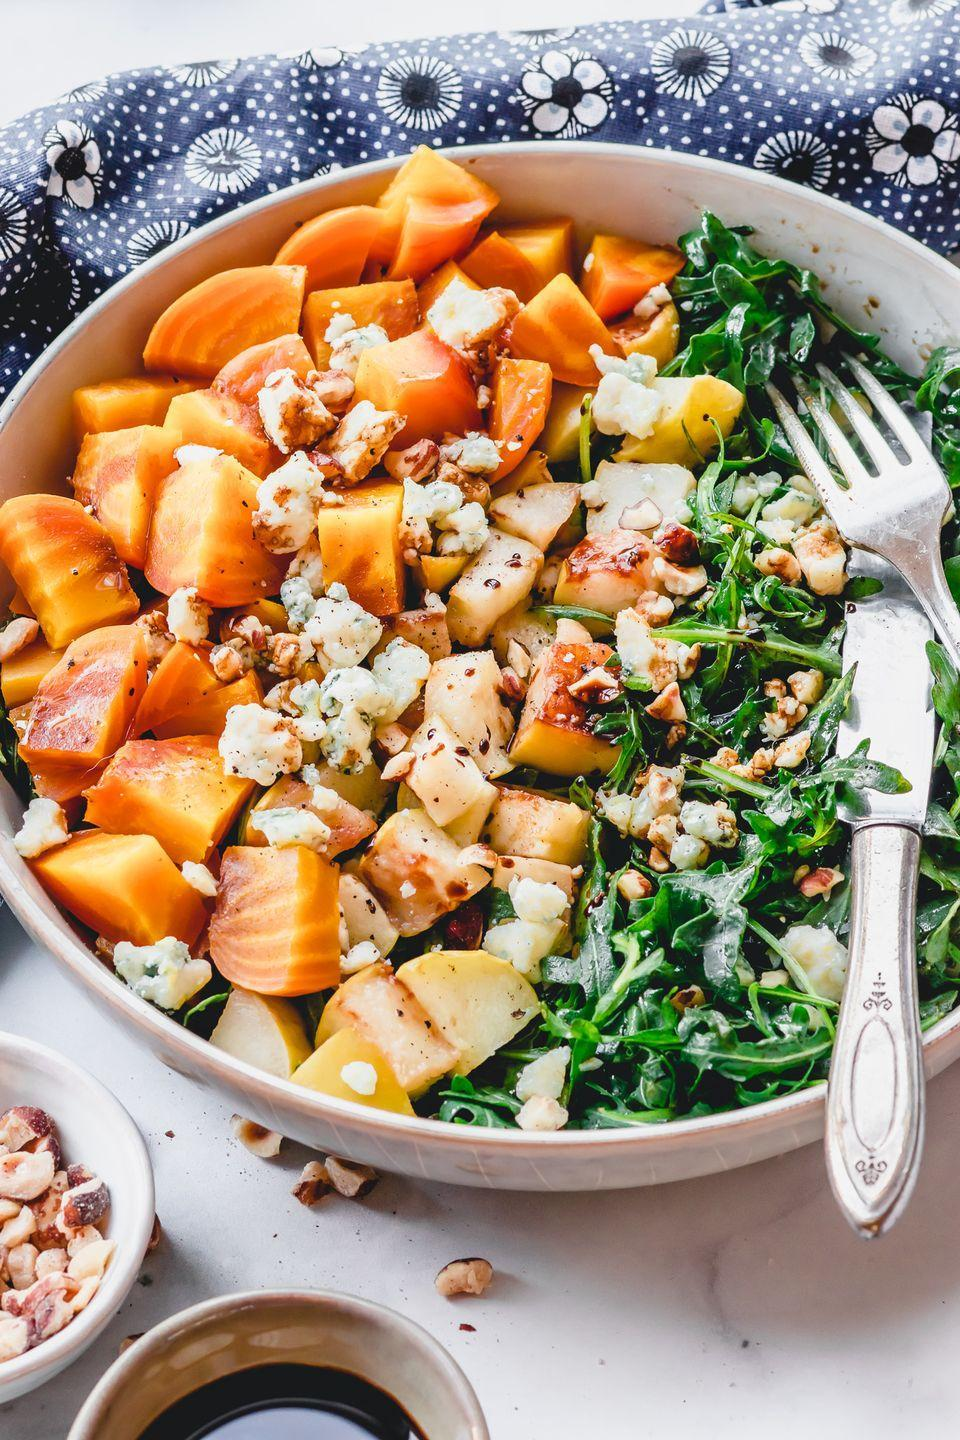 """<p>Roasted beets, fried apples, and gorgonzola cheese. This salad is so delicious you'll be licking the bowl.</p><p><strong>Get the recipe at <a href=""""https://www.rosalynndaniels.com/golden-beet-and-arugula-salad-with-fried-apples/"""" rel=""""nofollow noopener"""" target=""""_blank"""" data-ylk=""""slk:Rosalynn Daniels"""" class=""""link rapid-noclick-resp"""">Rosalynn Daniels</a>.</strong></p>"""